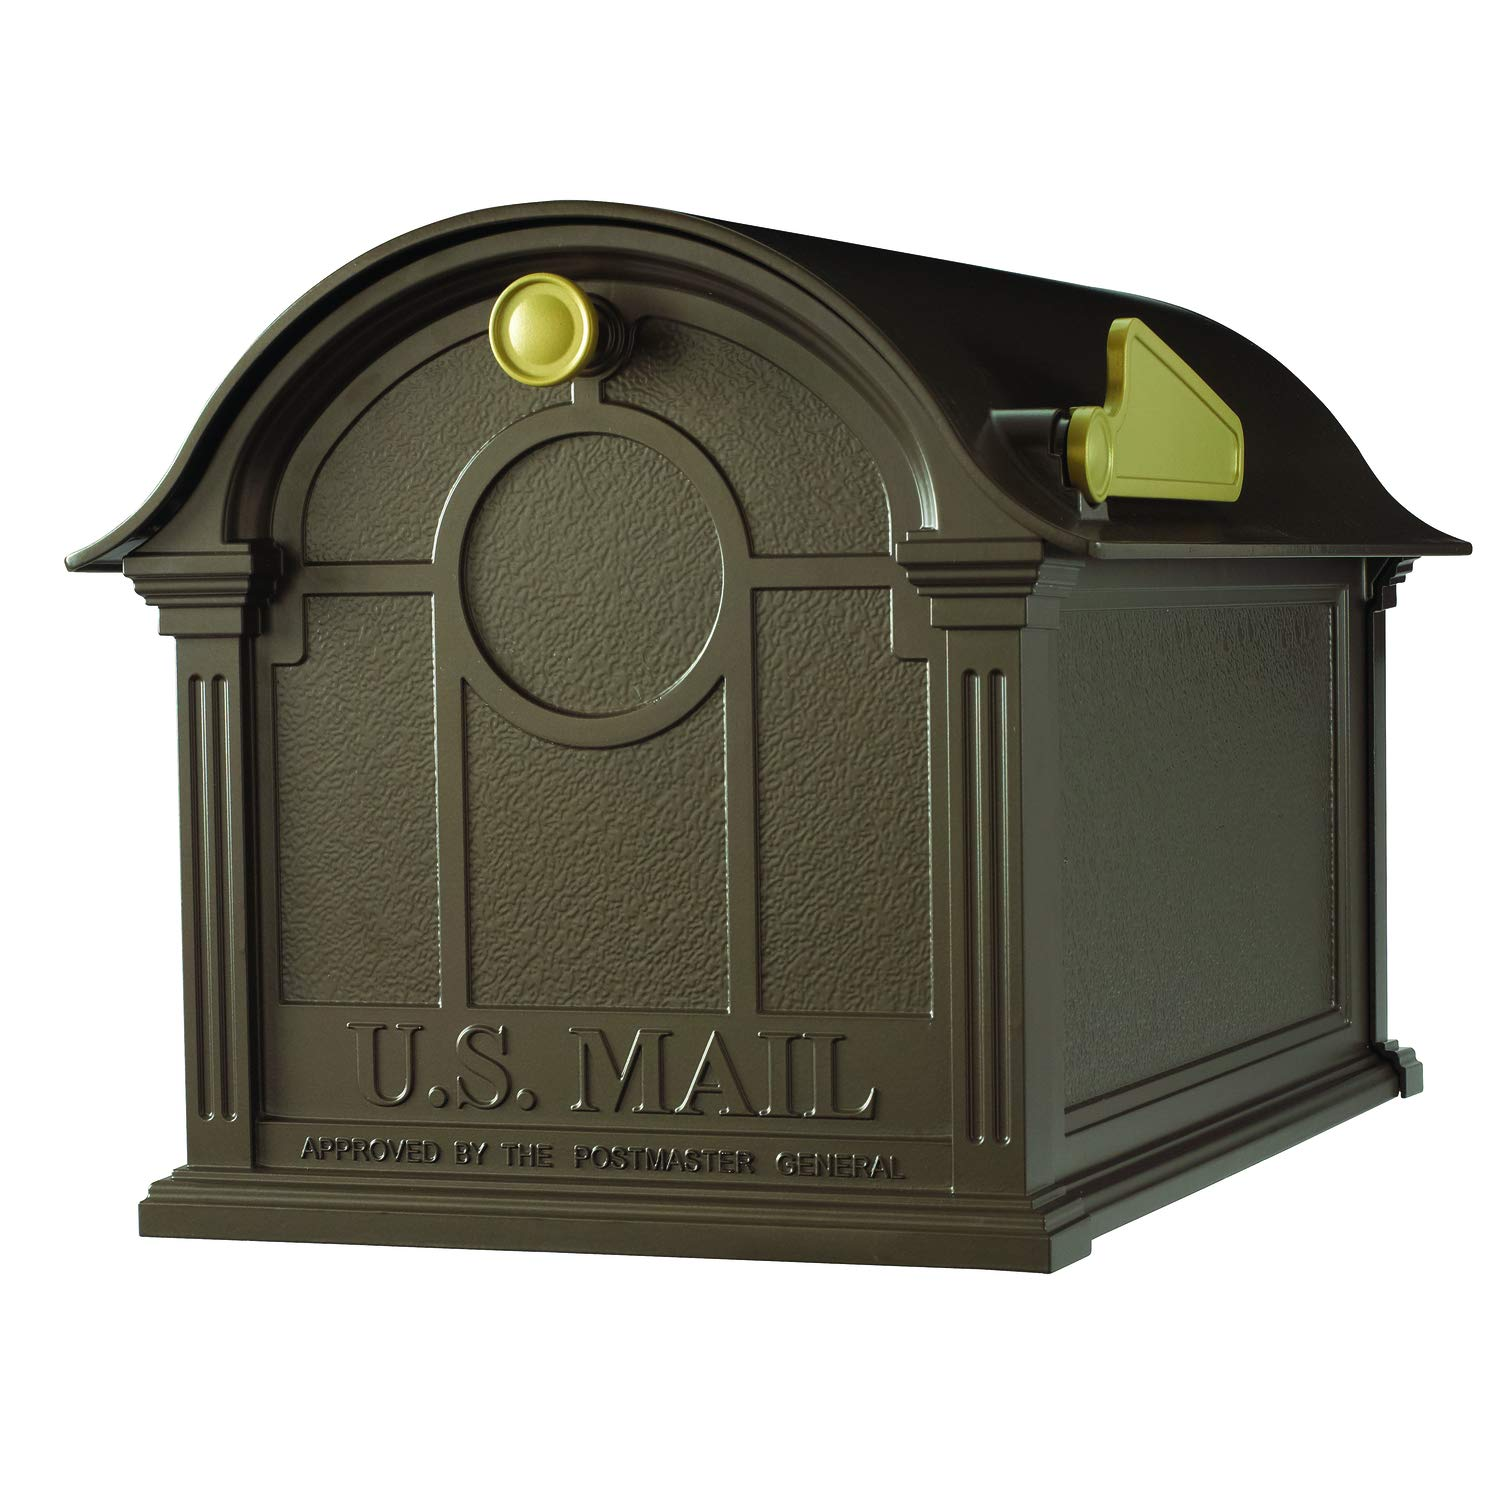 Whitehall Products Balmoral Mailbox, Bronze by Whitehall (Image #1)